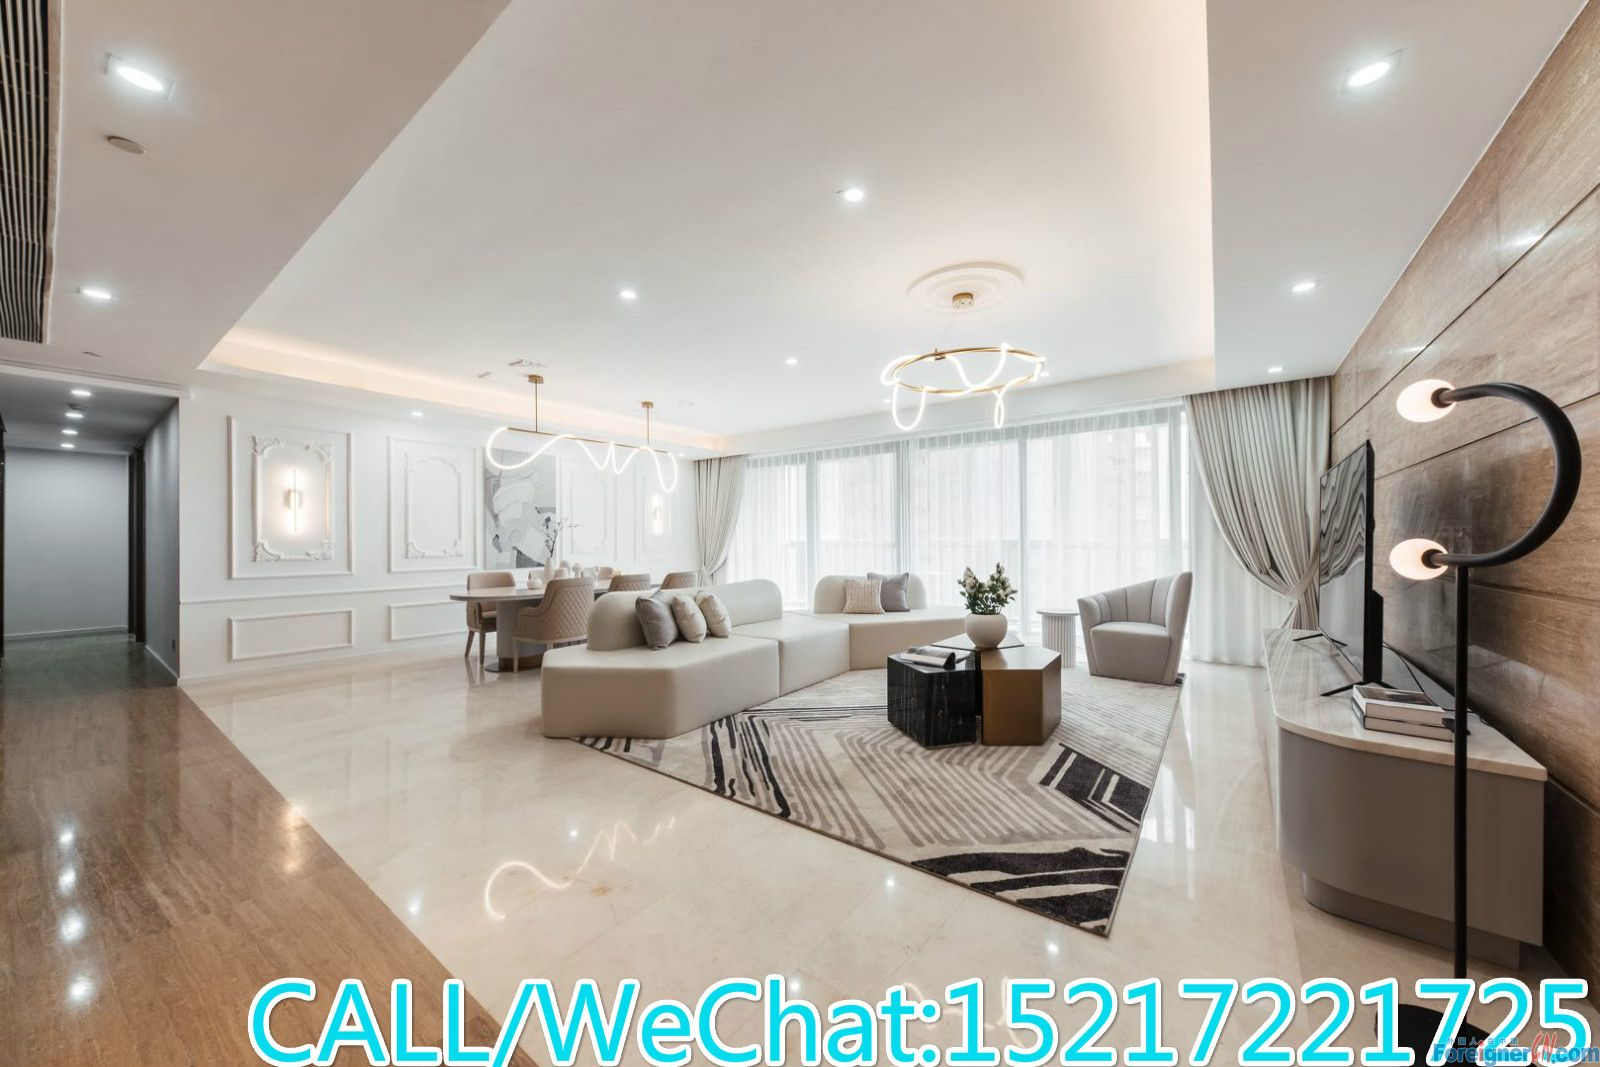 Starry Winking-Brand new 4brs avaliable now,large living room,good layout,good condition.CBD AREA.super convenient.